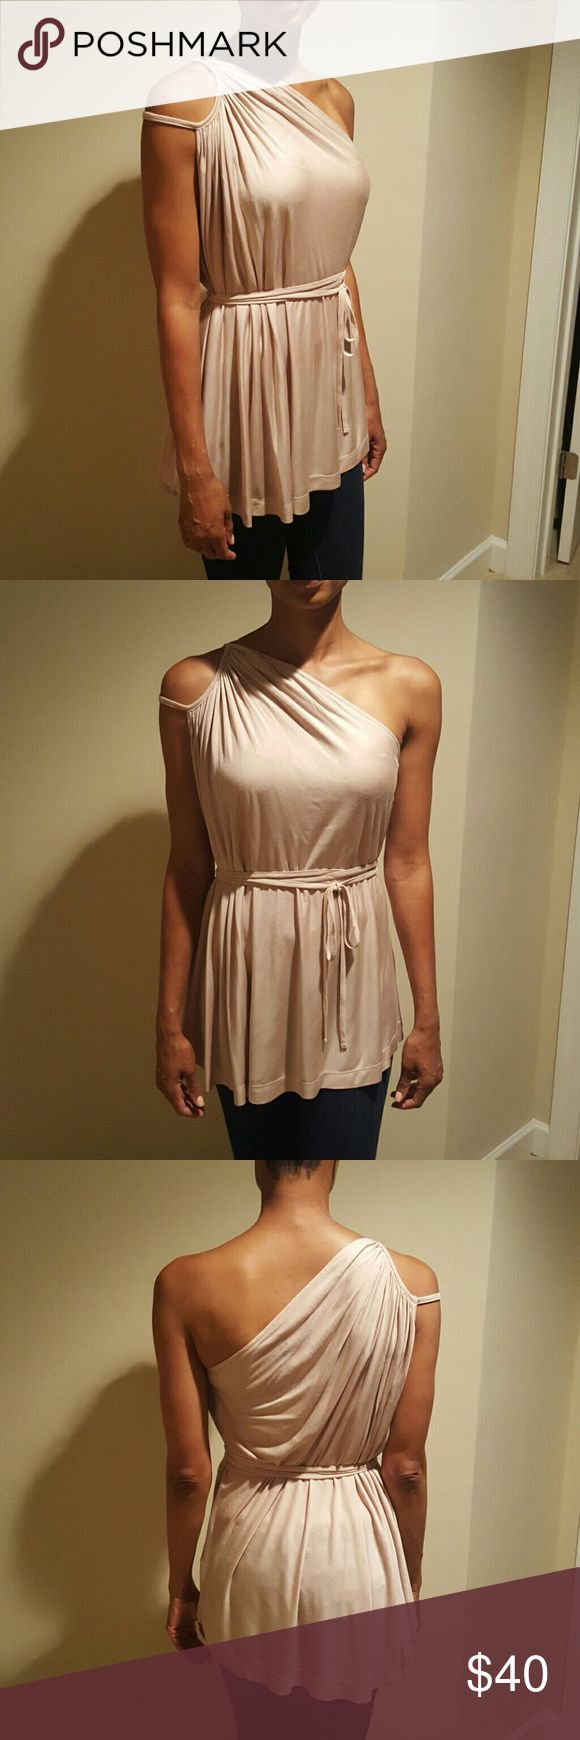 French Connection Grecian Blouse Beautiful grecian-style blouse with tie waist. On trend blush-color and one shoulder style. 100% Rayon. French Connection Tops